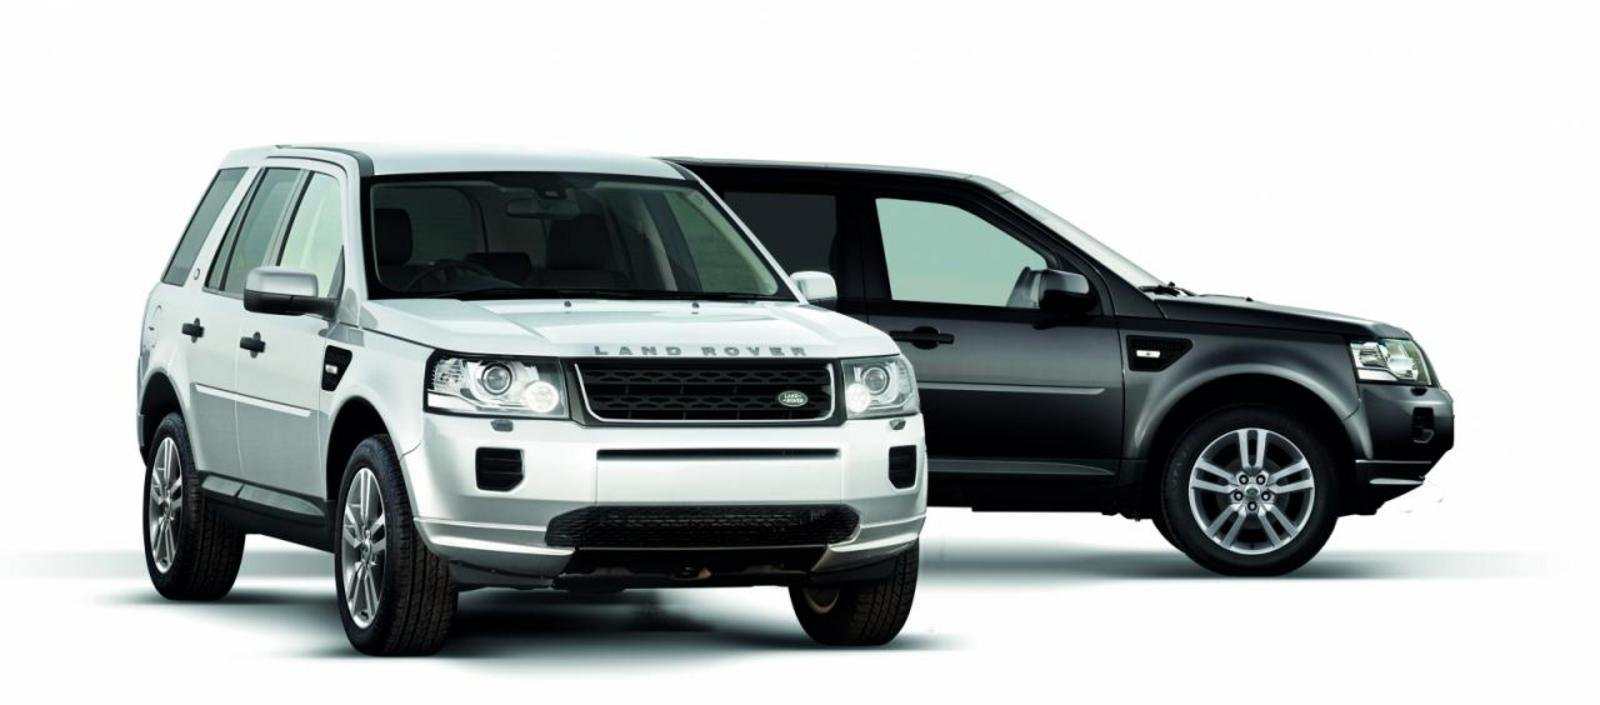 2013 land rover freelander 2 black and white edition review top speed. Black Bedroom Furniture Sets. Home Design Ideas